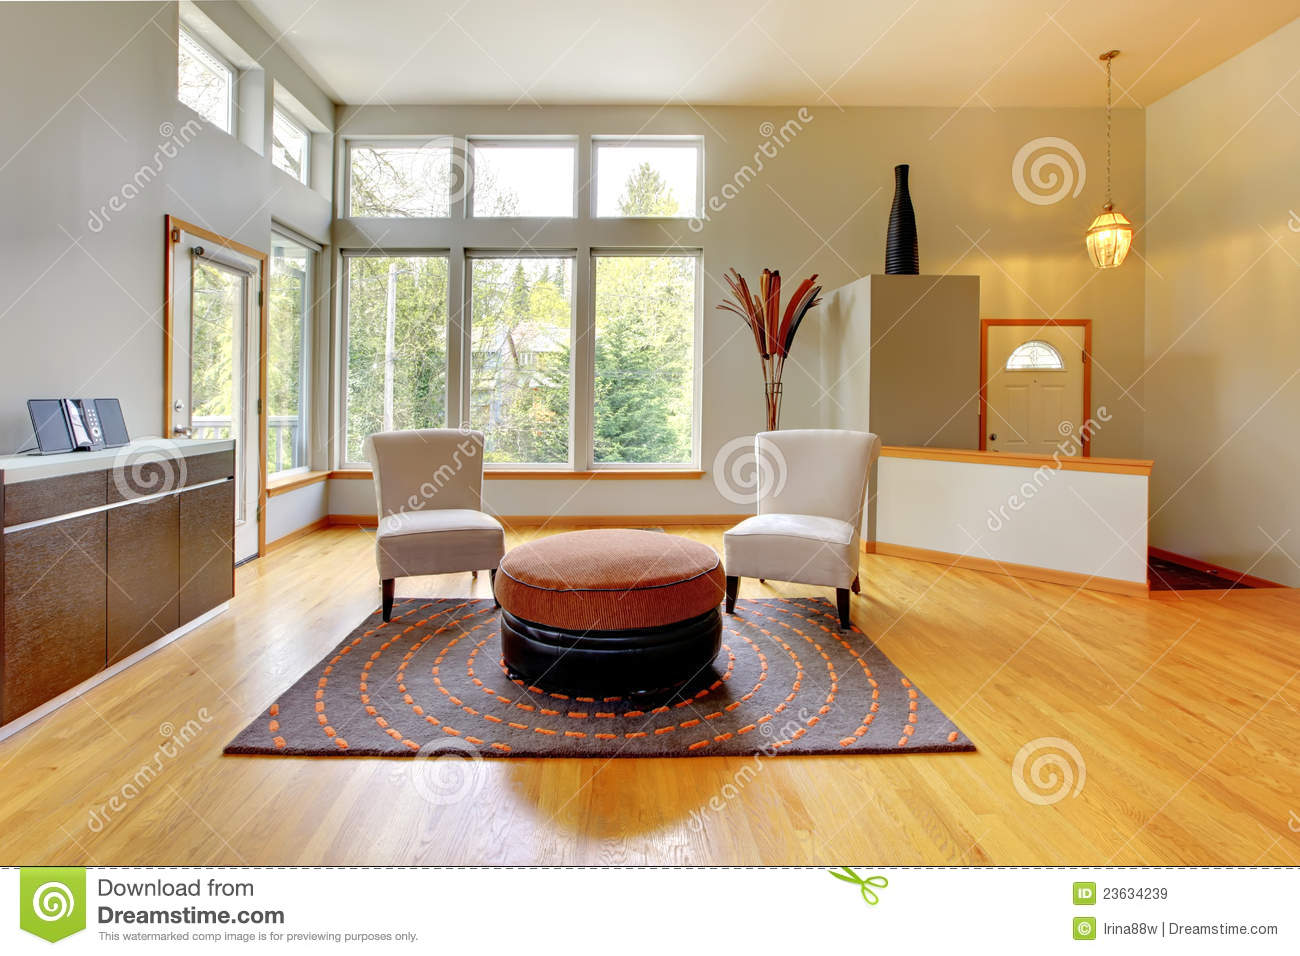 Download Fantastic Modern Living Room Home Interior. Stock Image - Image of estate, design: 23634239